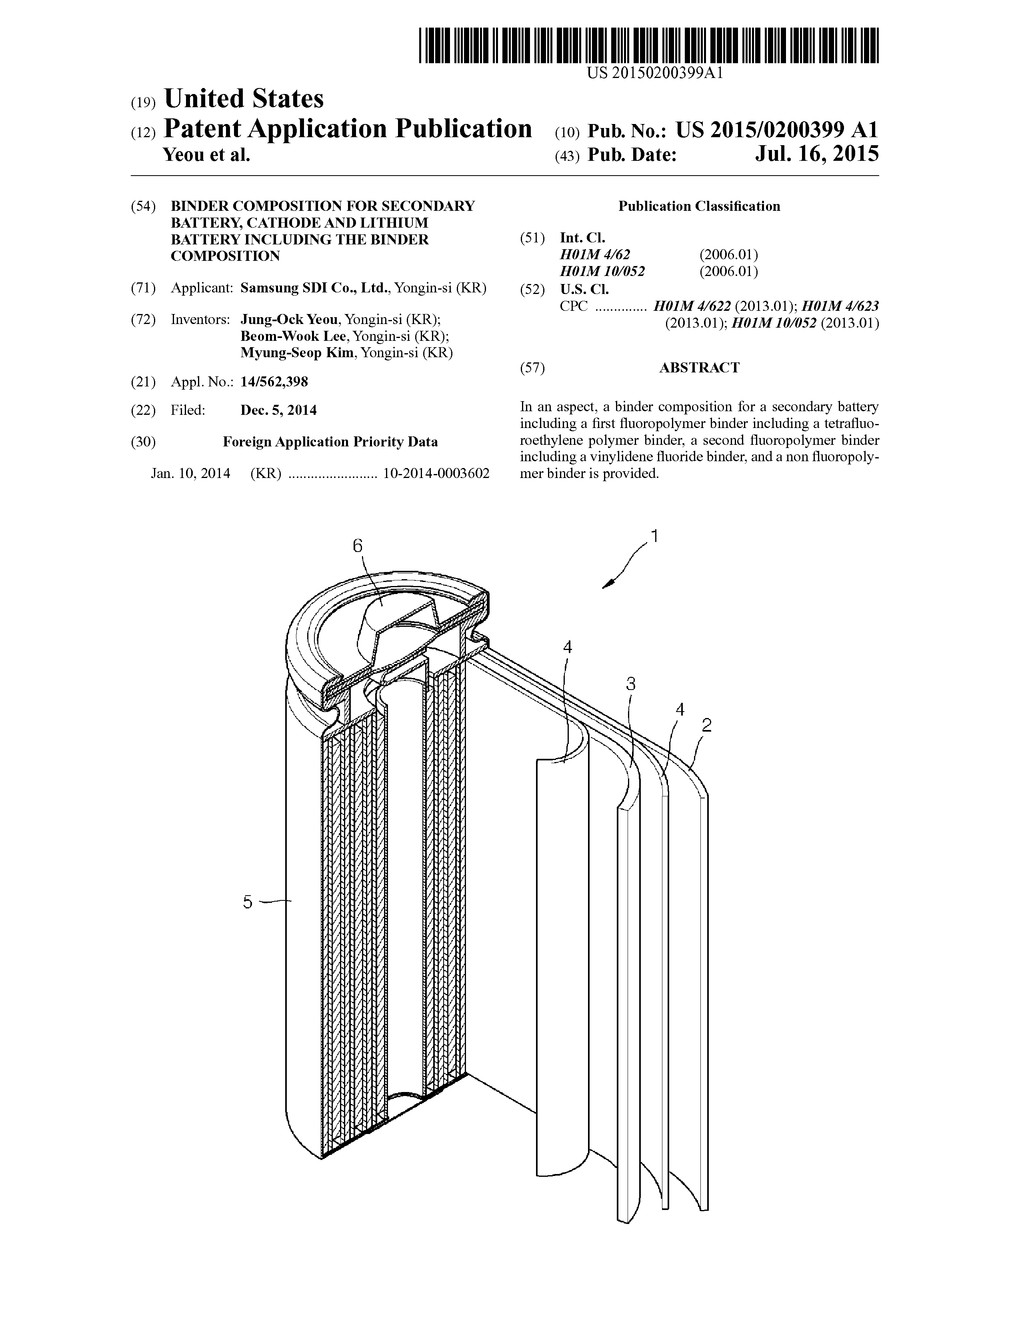 hight resolution of binder composition for secondary battery cathode and lithium battery including the binder composition diagram schematic and image 01